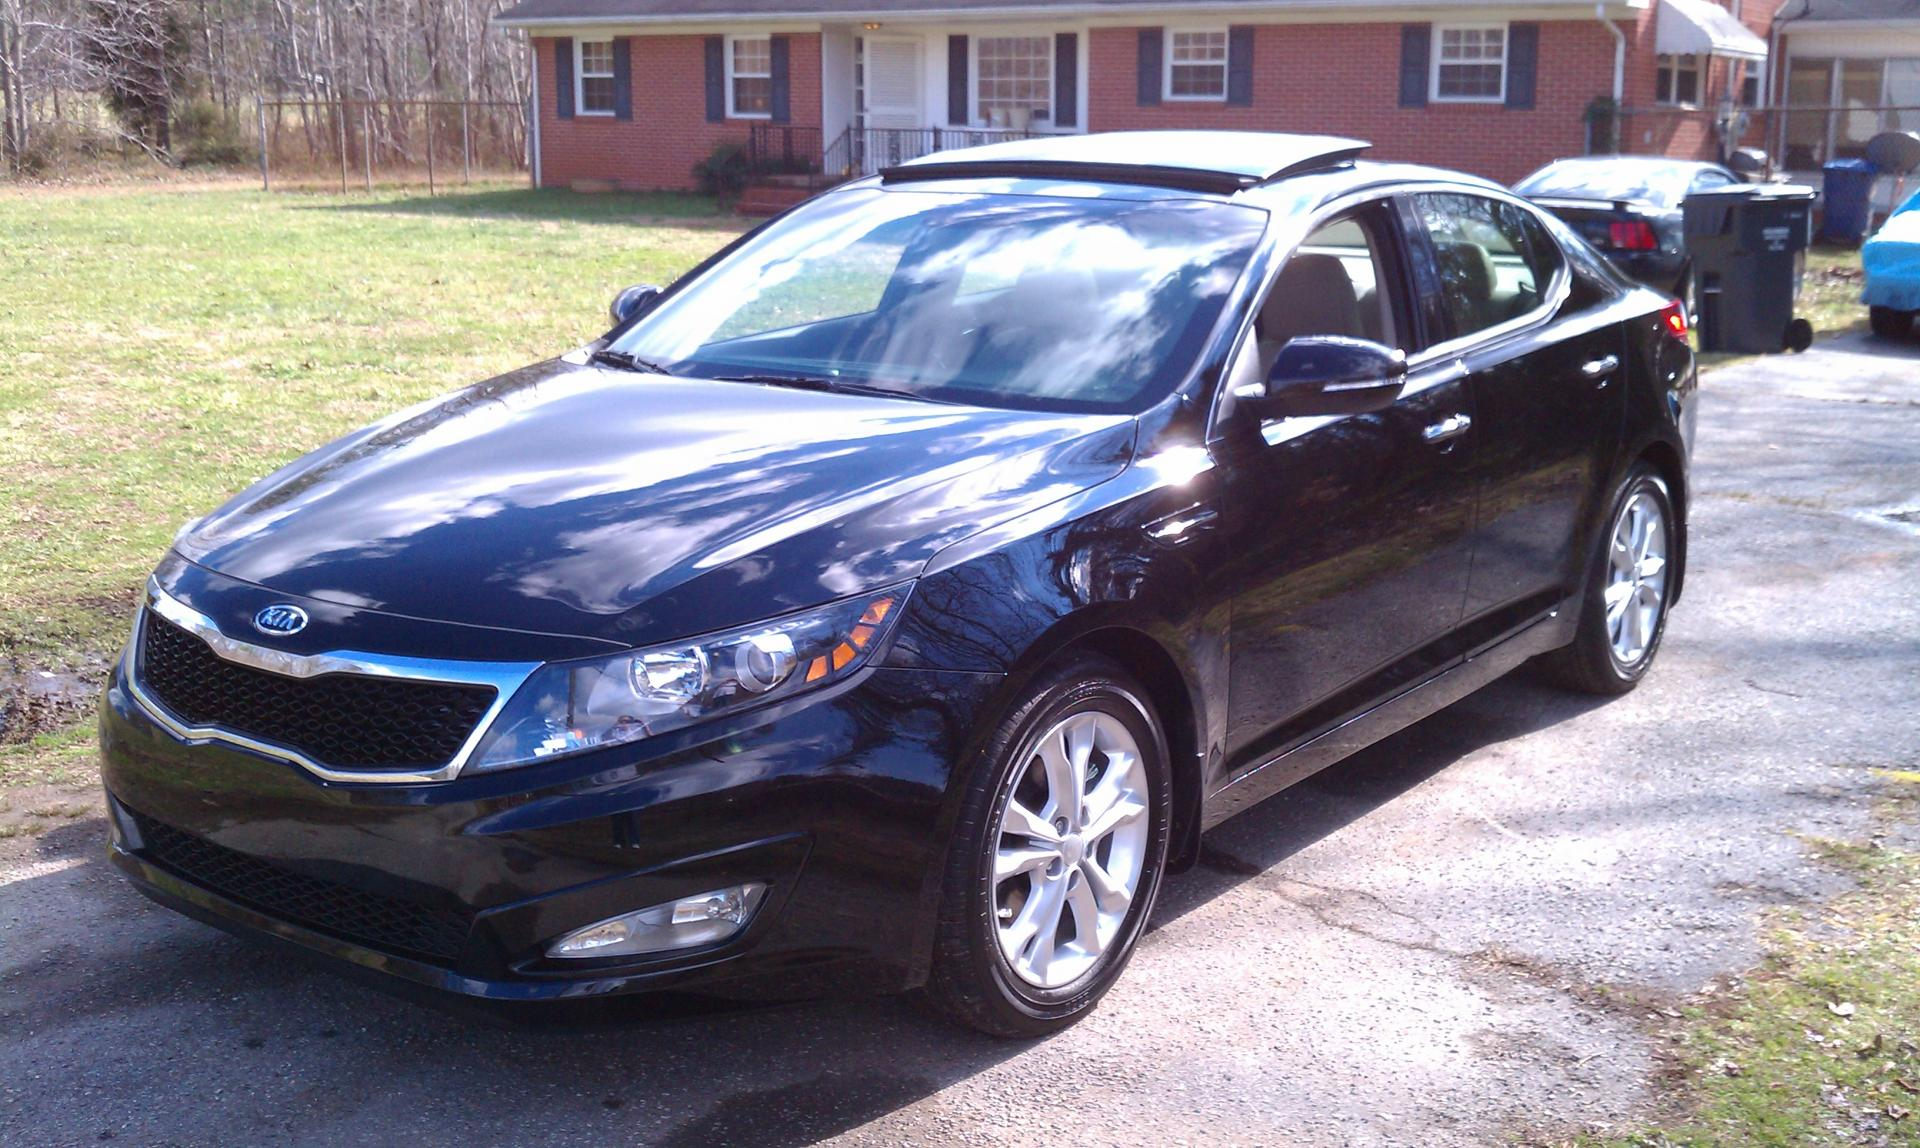 Photo 1 Of 7 From 2012 Optima Ex